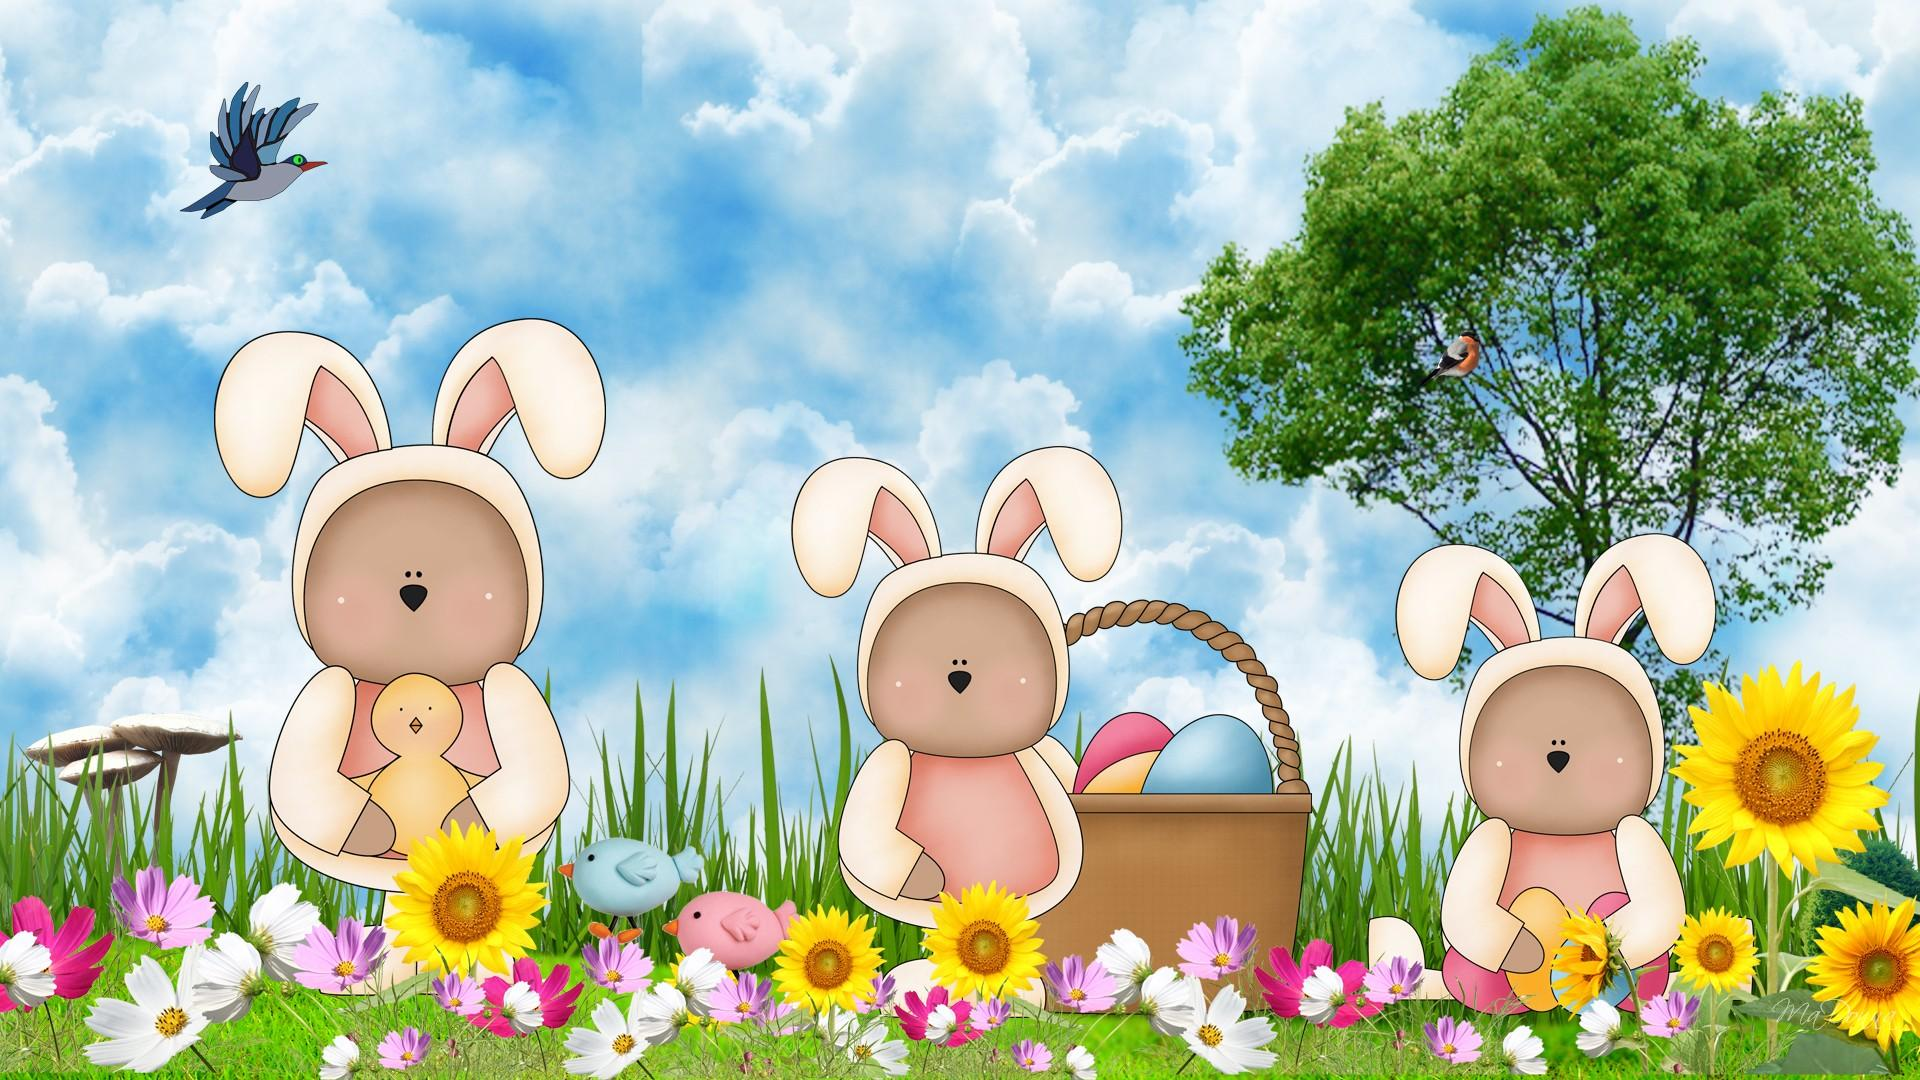 Happy Easter Holiday   Wallpaper High Definition High Quality 1920x1080